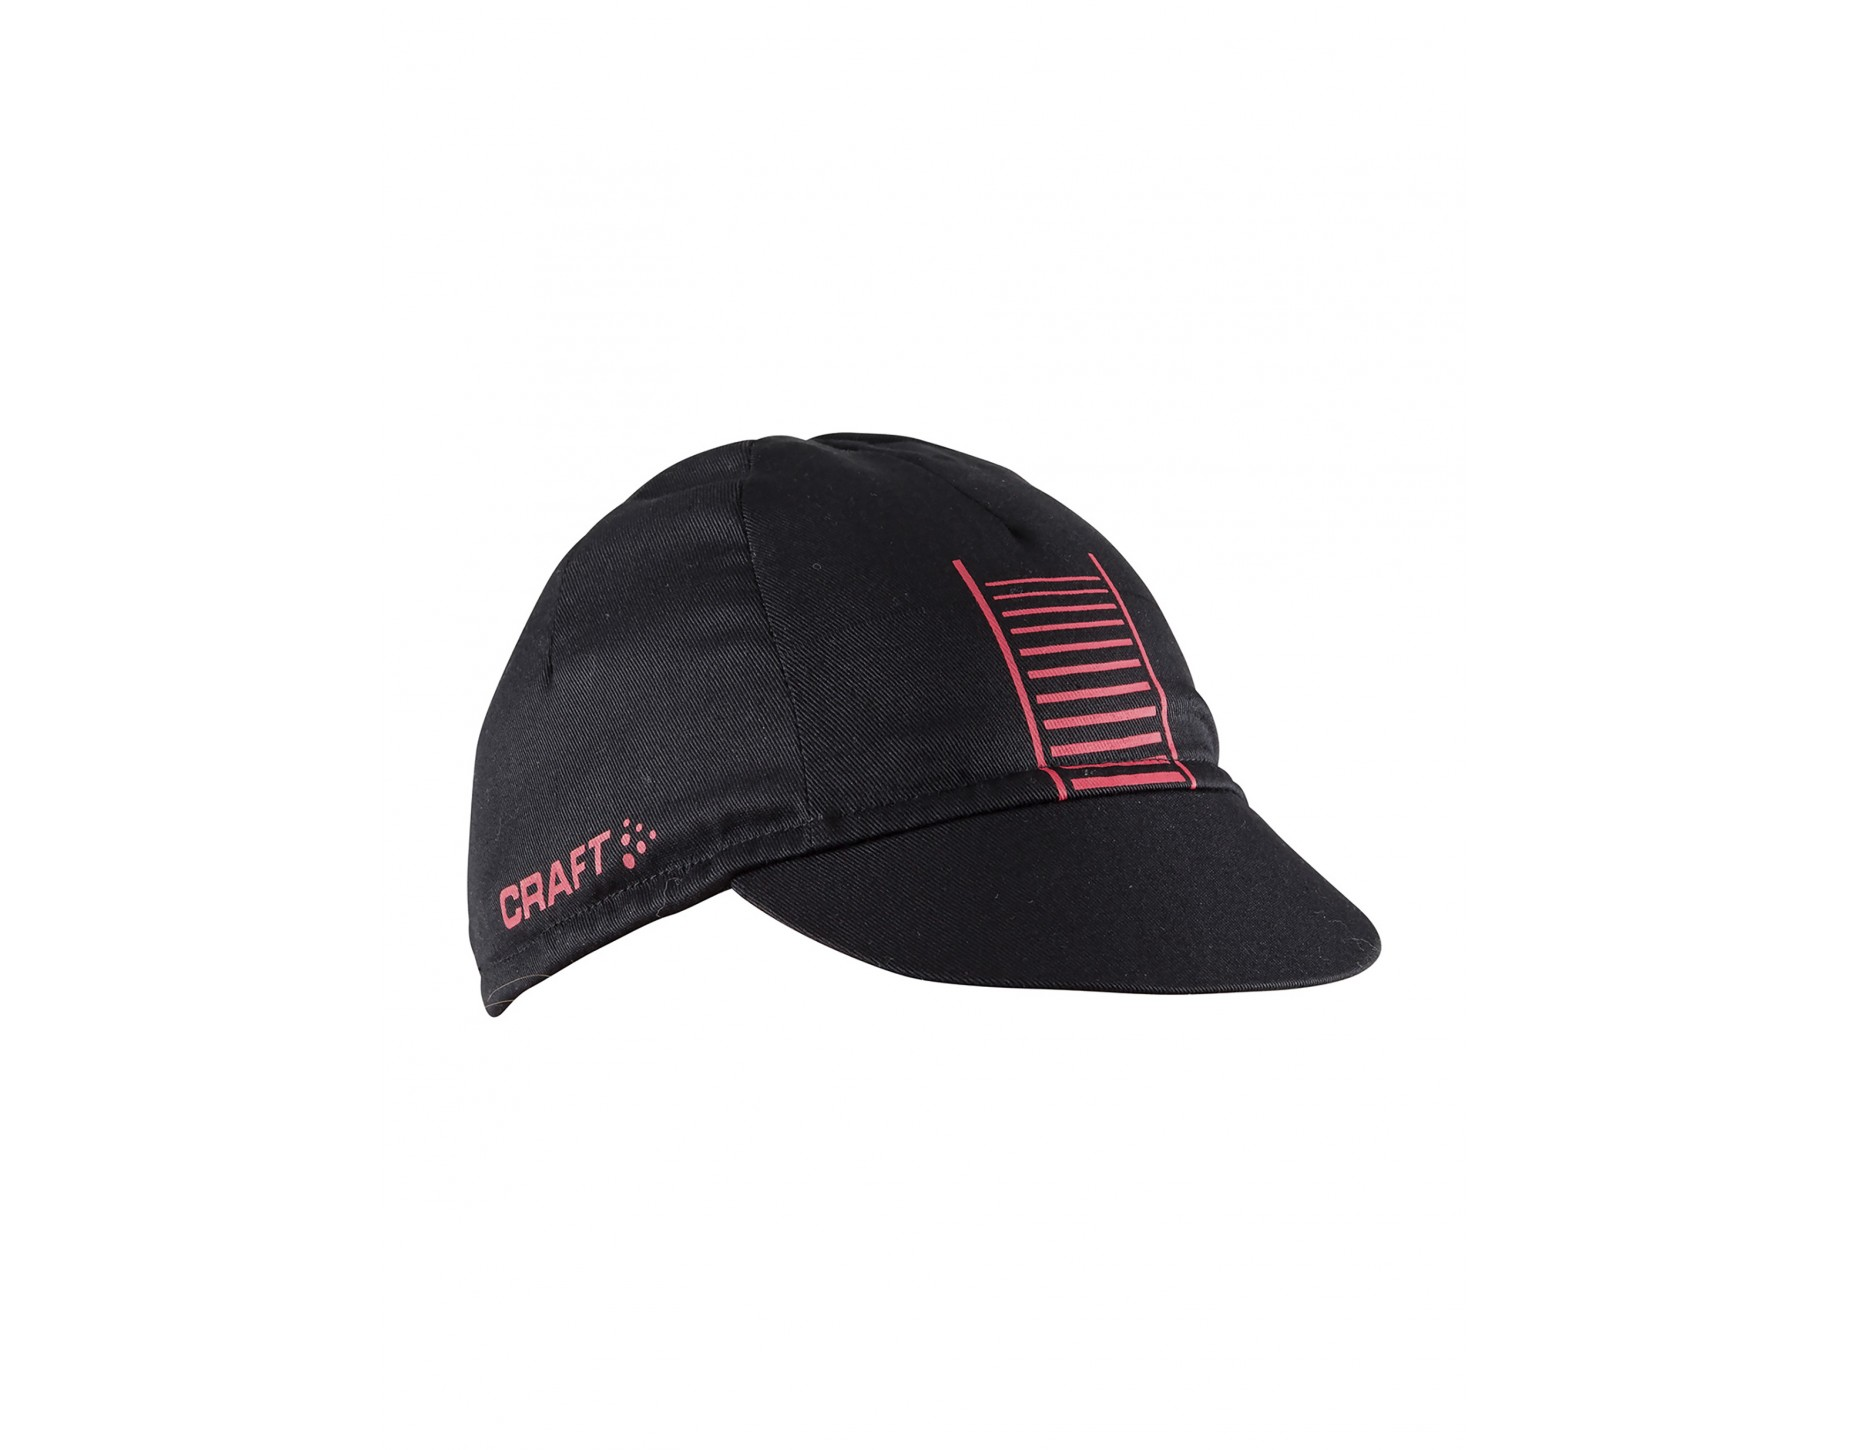 Craft classic bike cap precies wat je zoekt rose bikes for Cap crafter